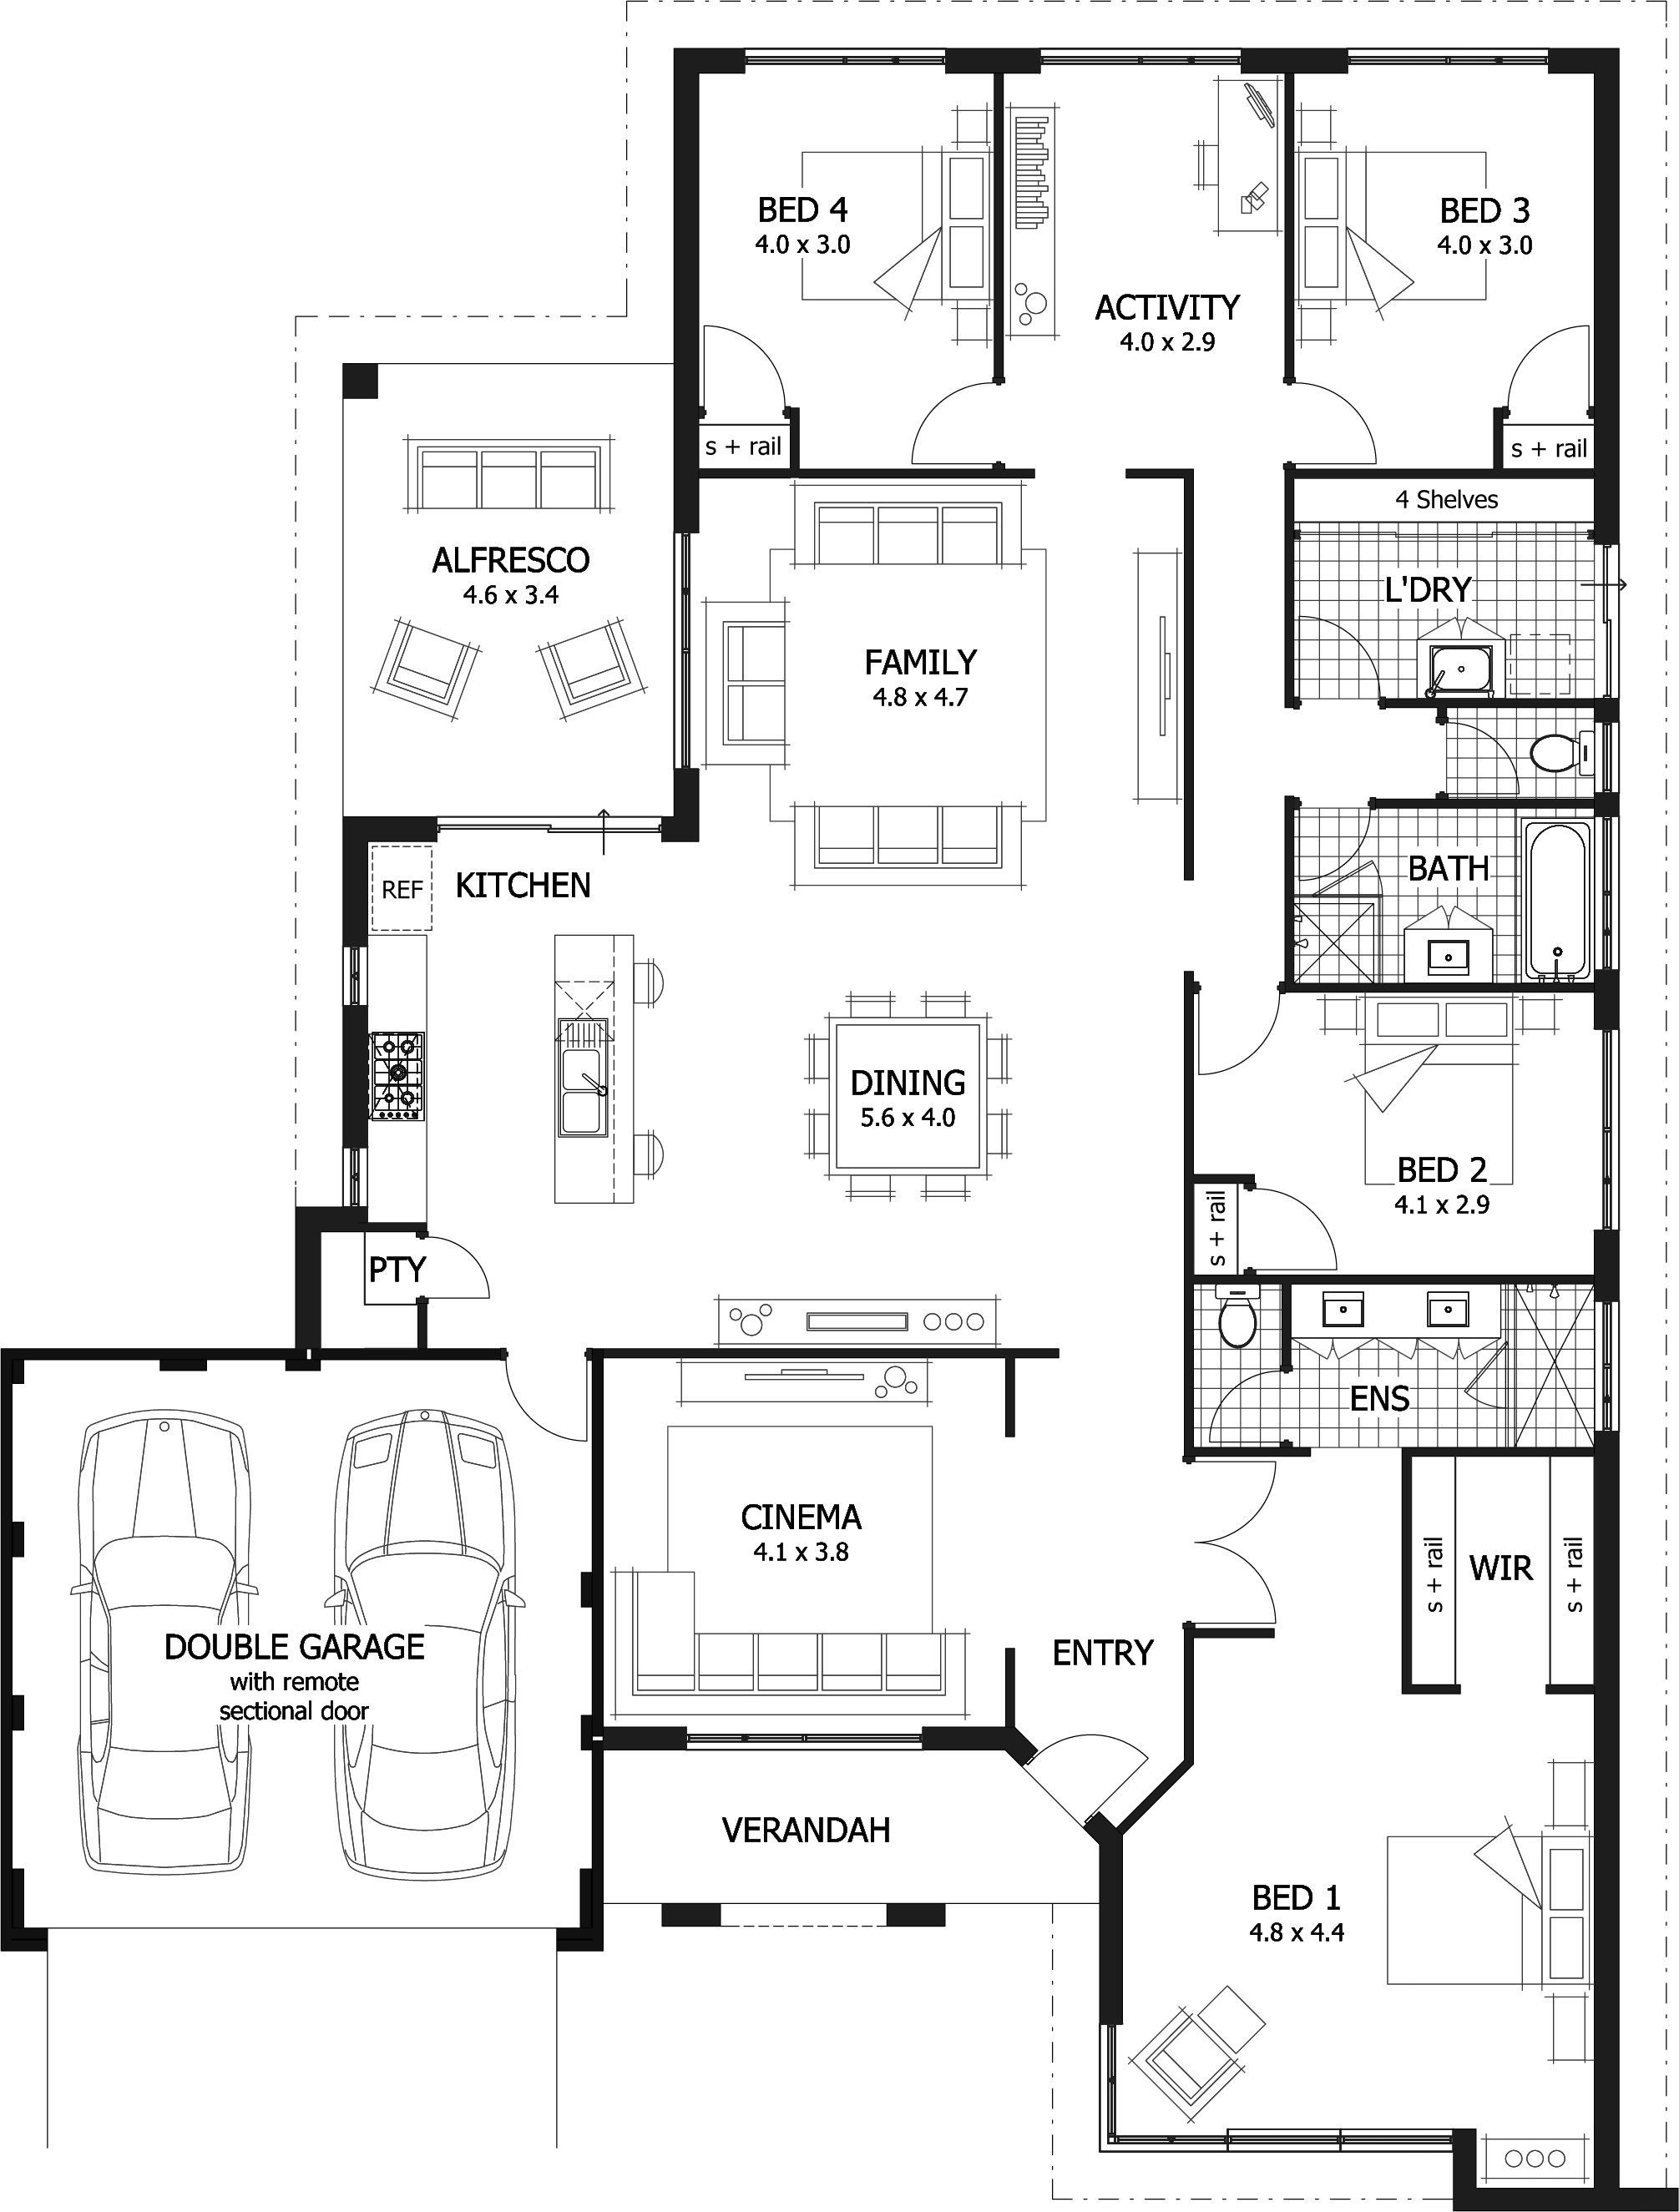 29 Barndominium Floor Plans Ideas To Suit Your Budget Barndominiumfloorplans Barndominiumide House Plans Australia 4 Bedroom House Plans Bedroom House Plans